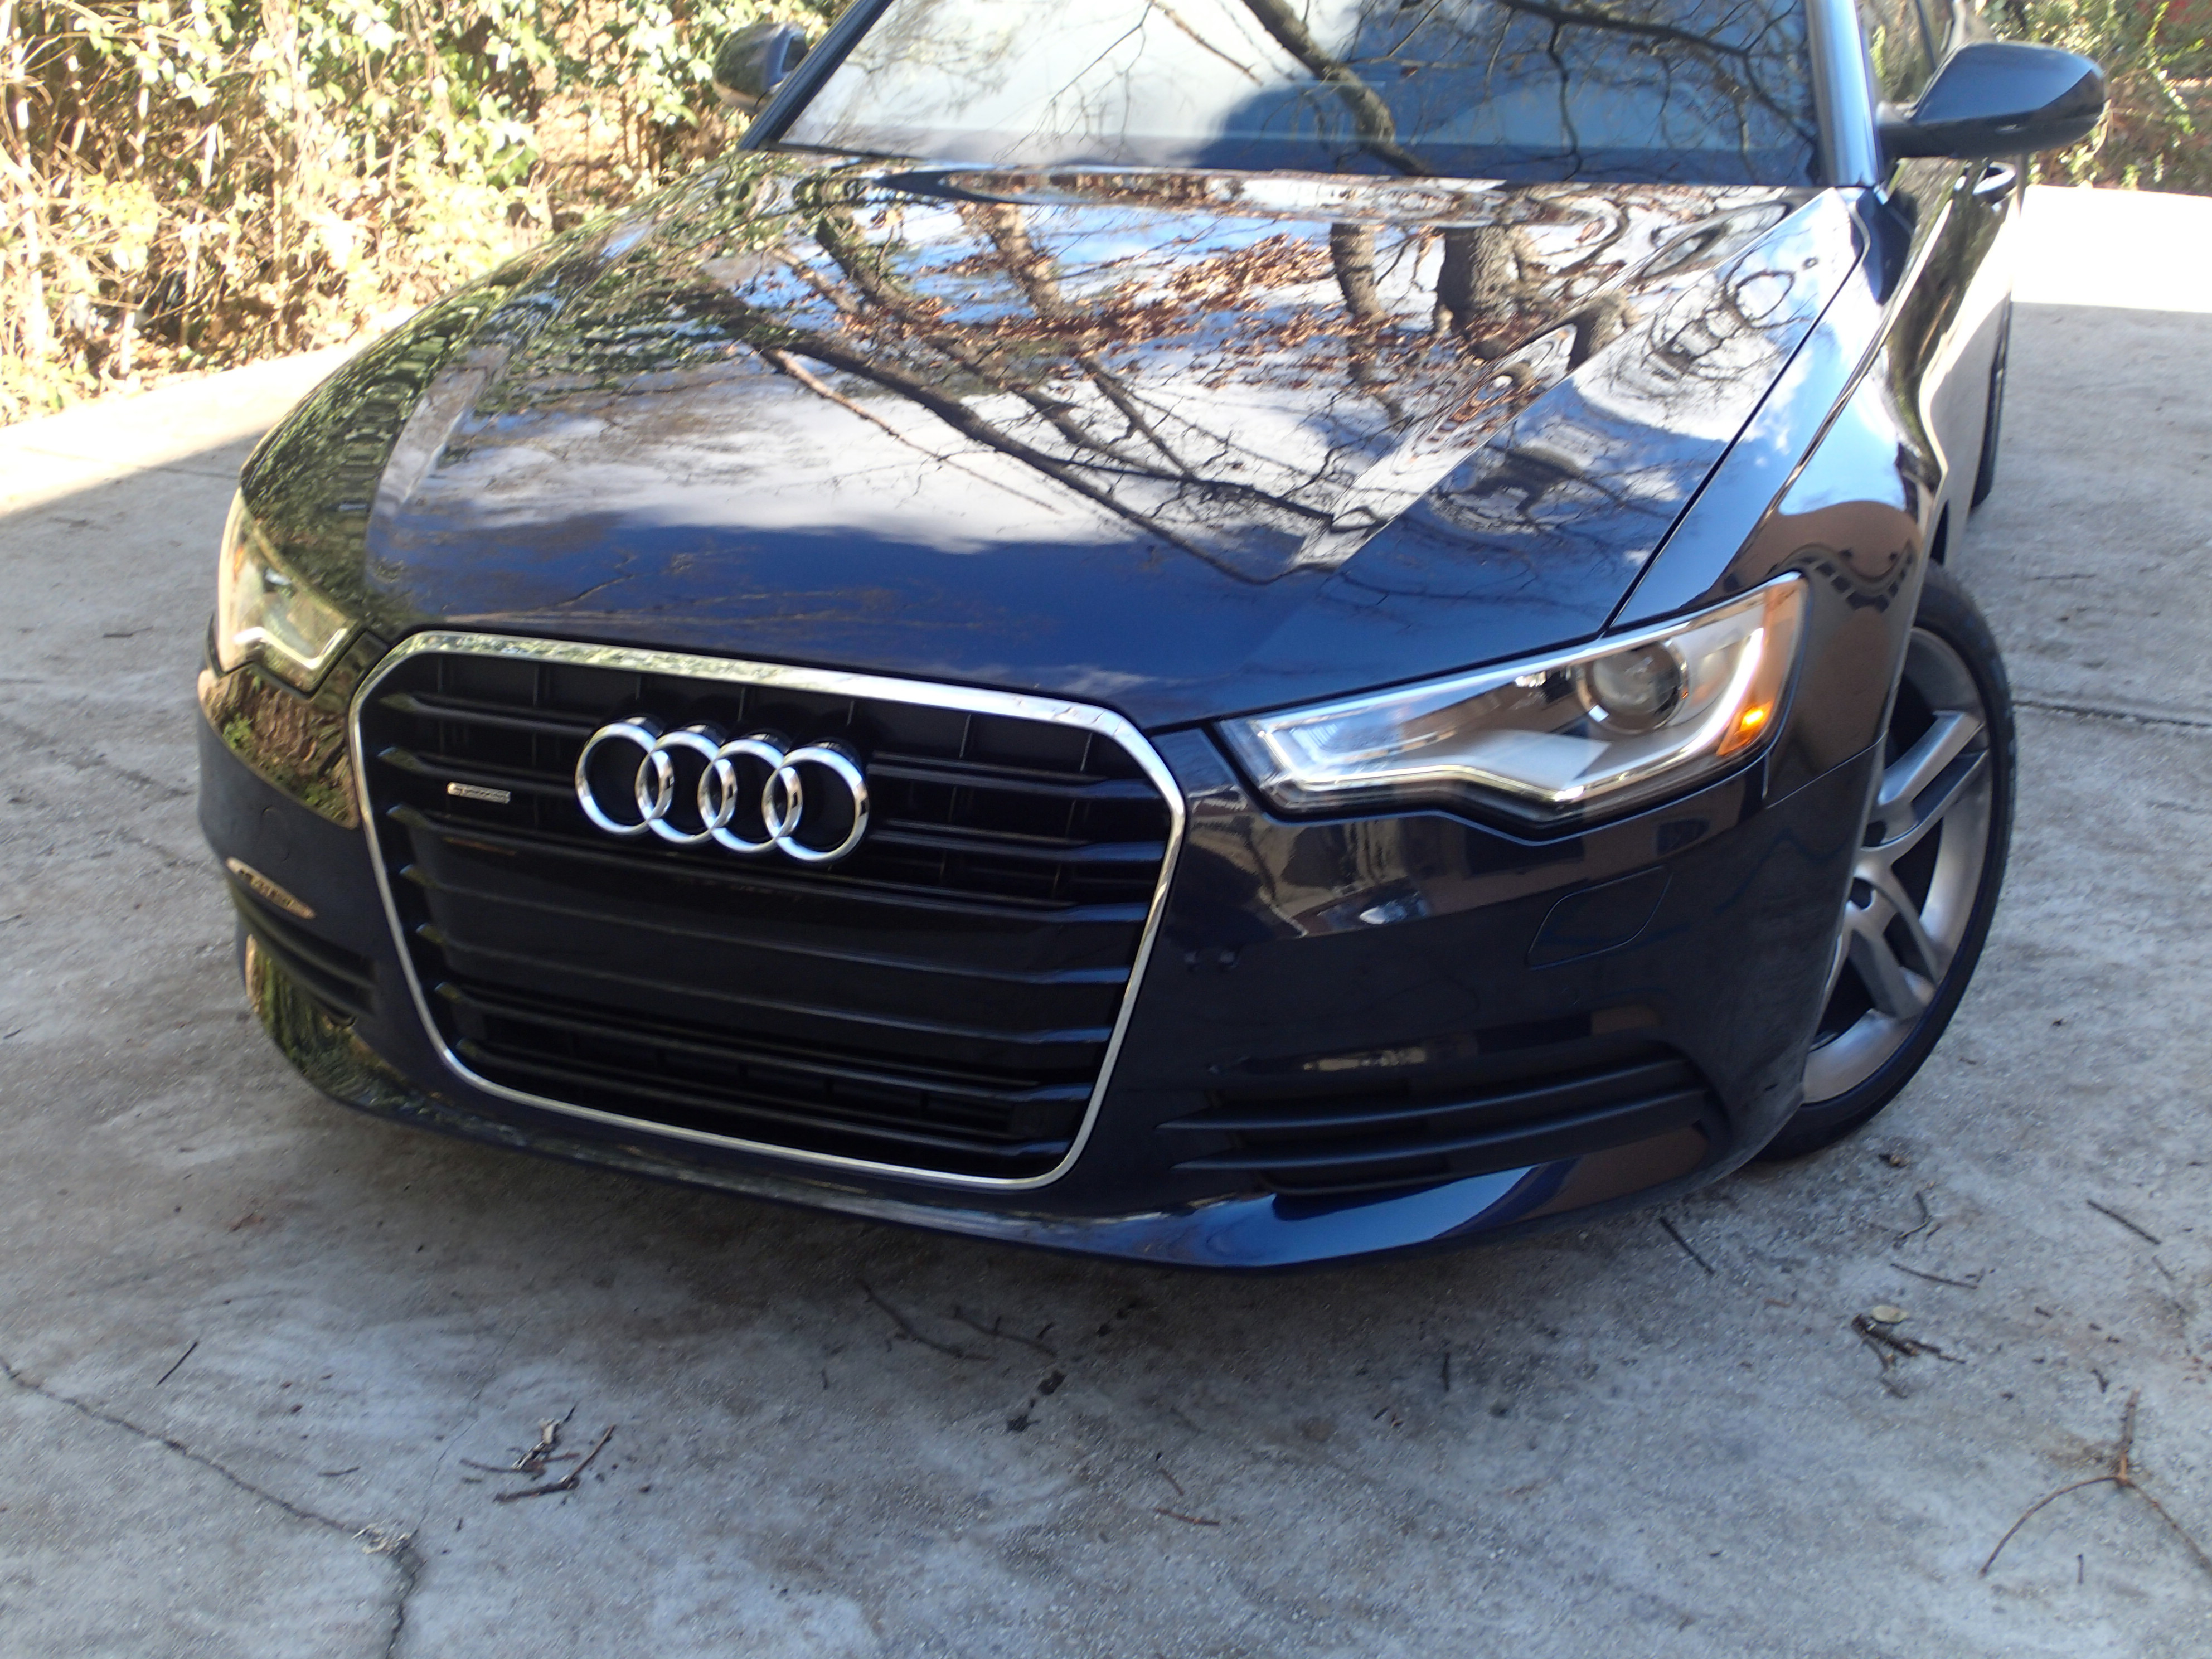 Audiliscious The Audi A Traveling In My World - My audi com